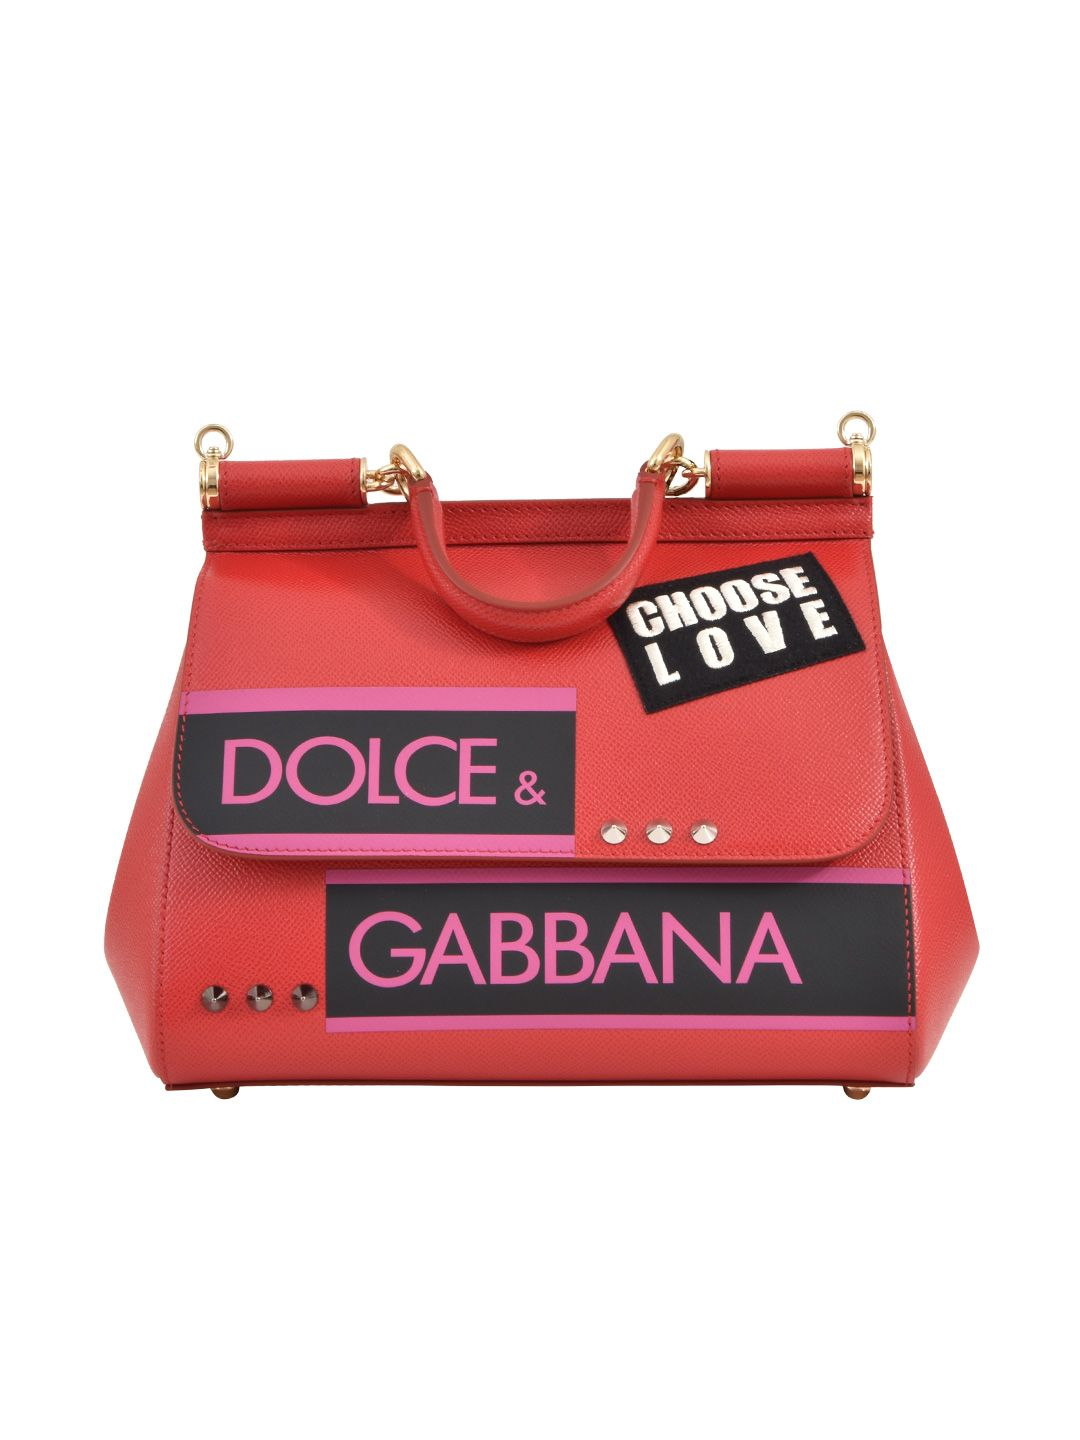 Dolce & Gabbana Sicily Red Md Tote